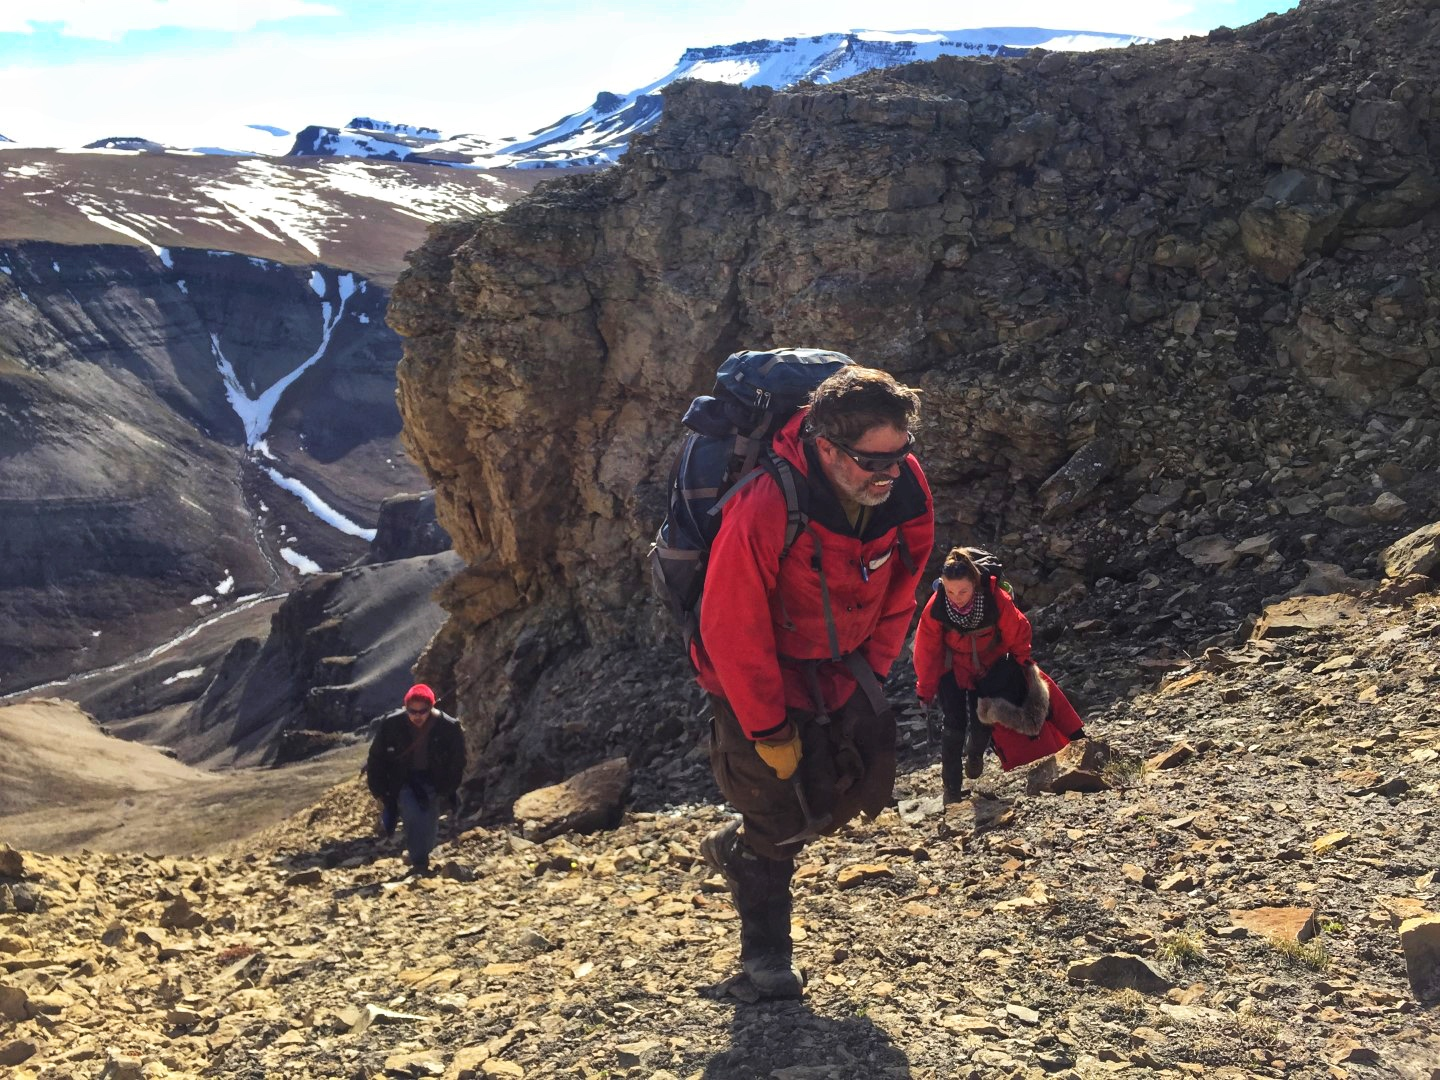 Steve Grasby and team carrying heavy bags of rocks collected from outcrops on northern Ellesmere Island.